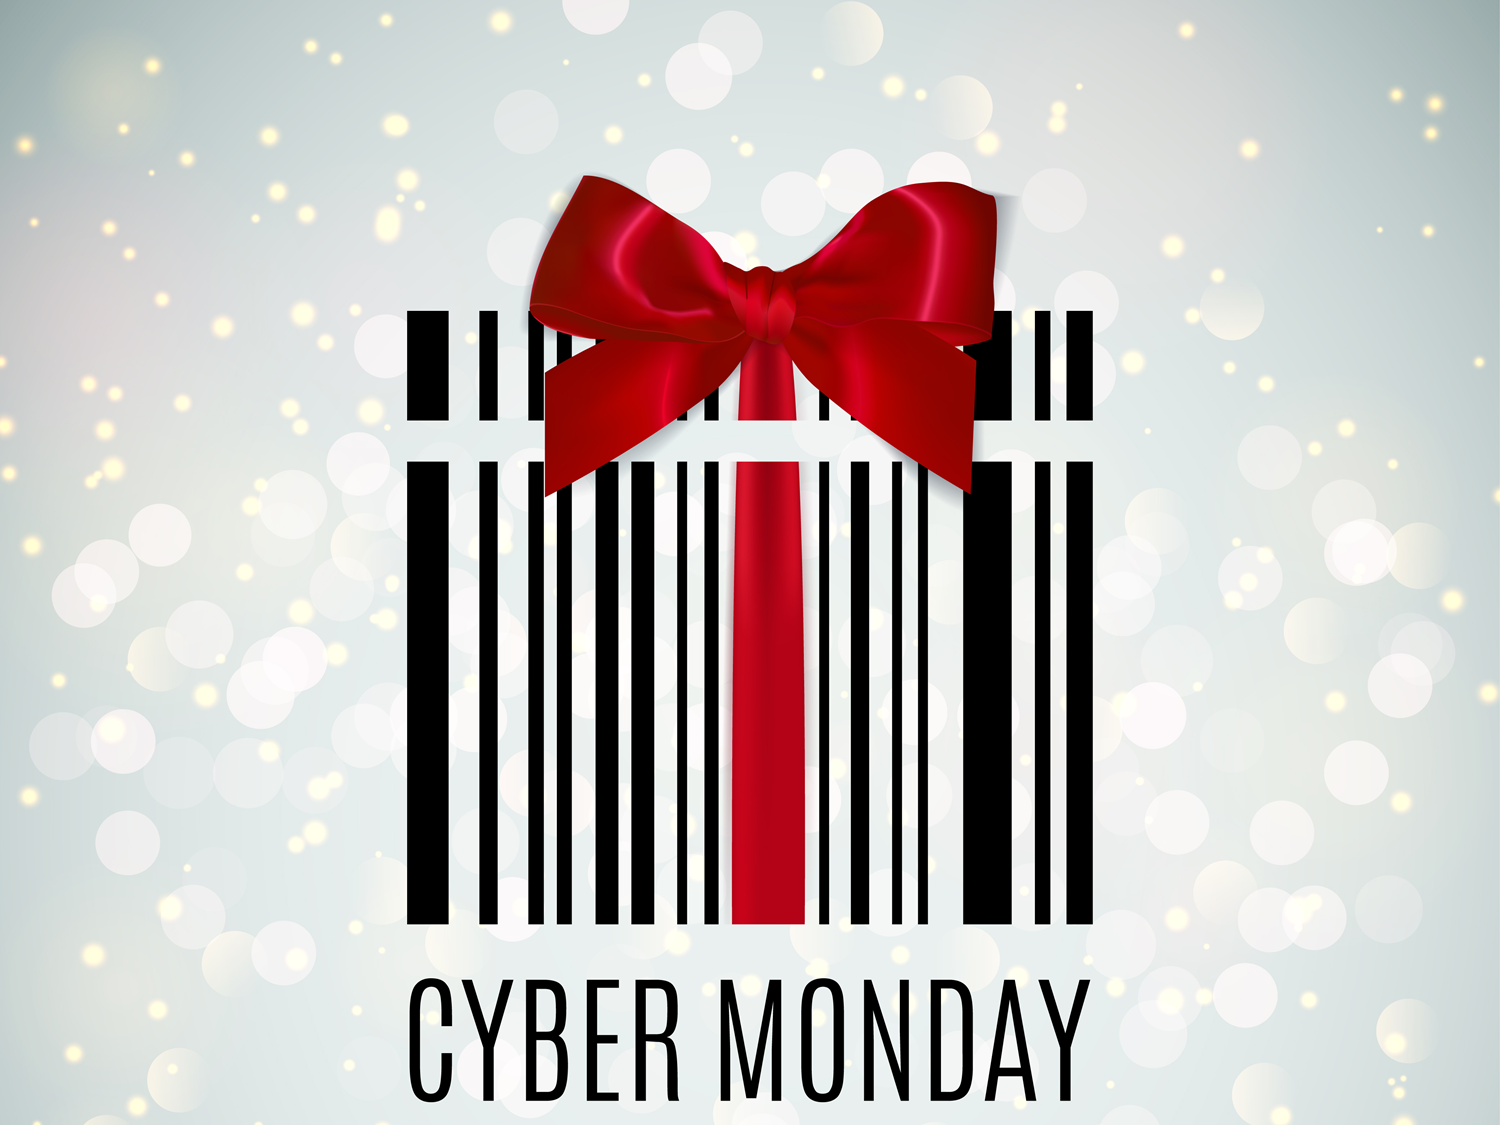 cyber monday featured